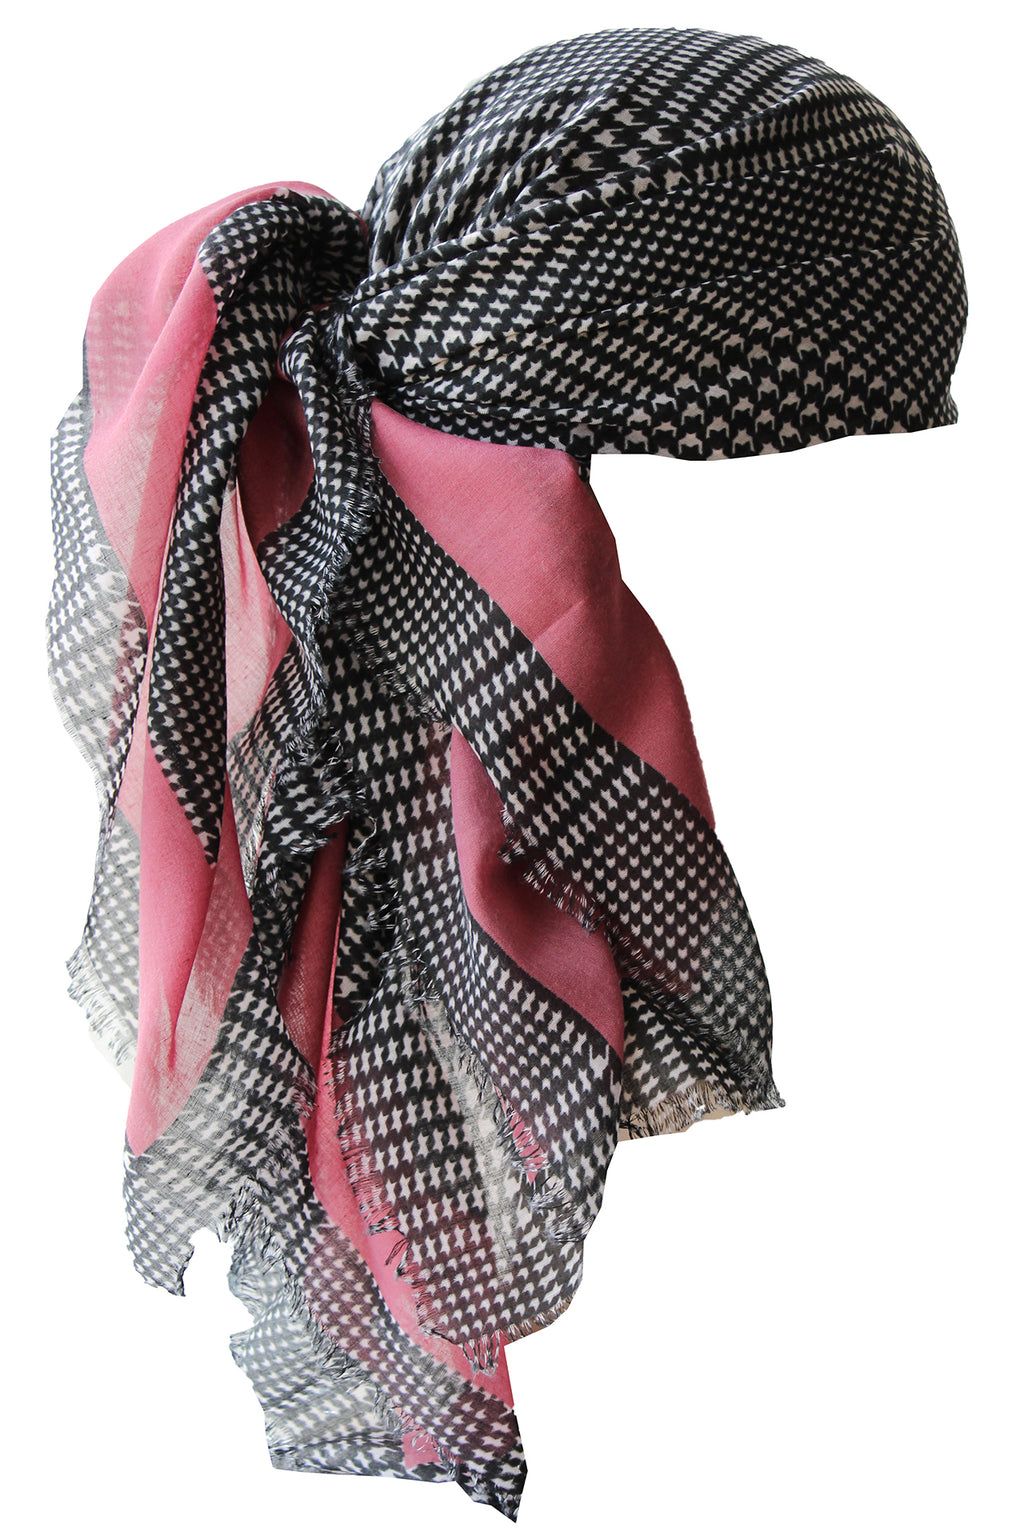 Everyday Square Headscarf- Black with Dusty Pink Edges